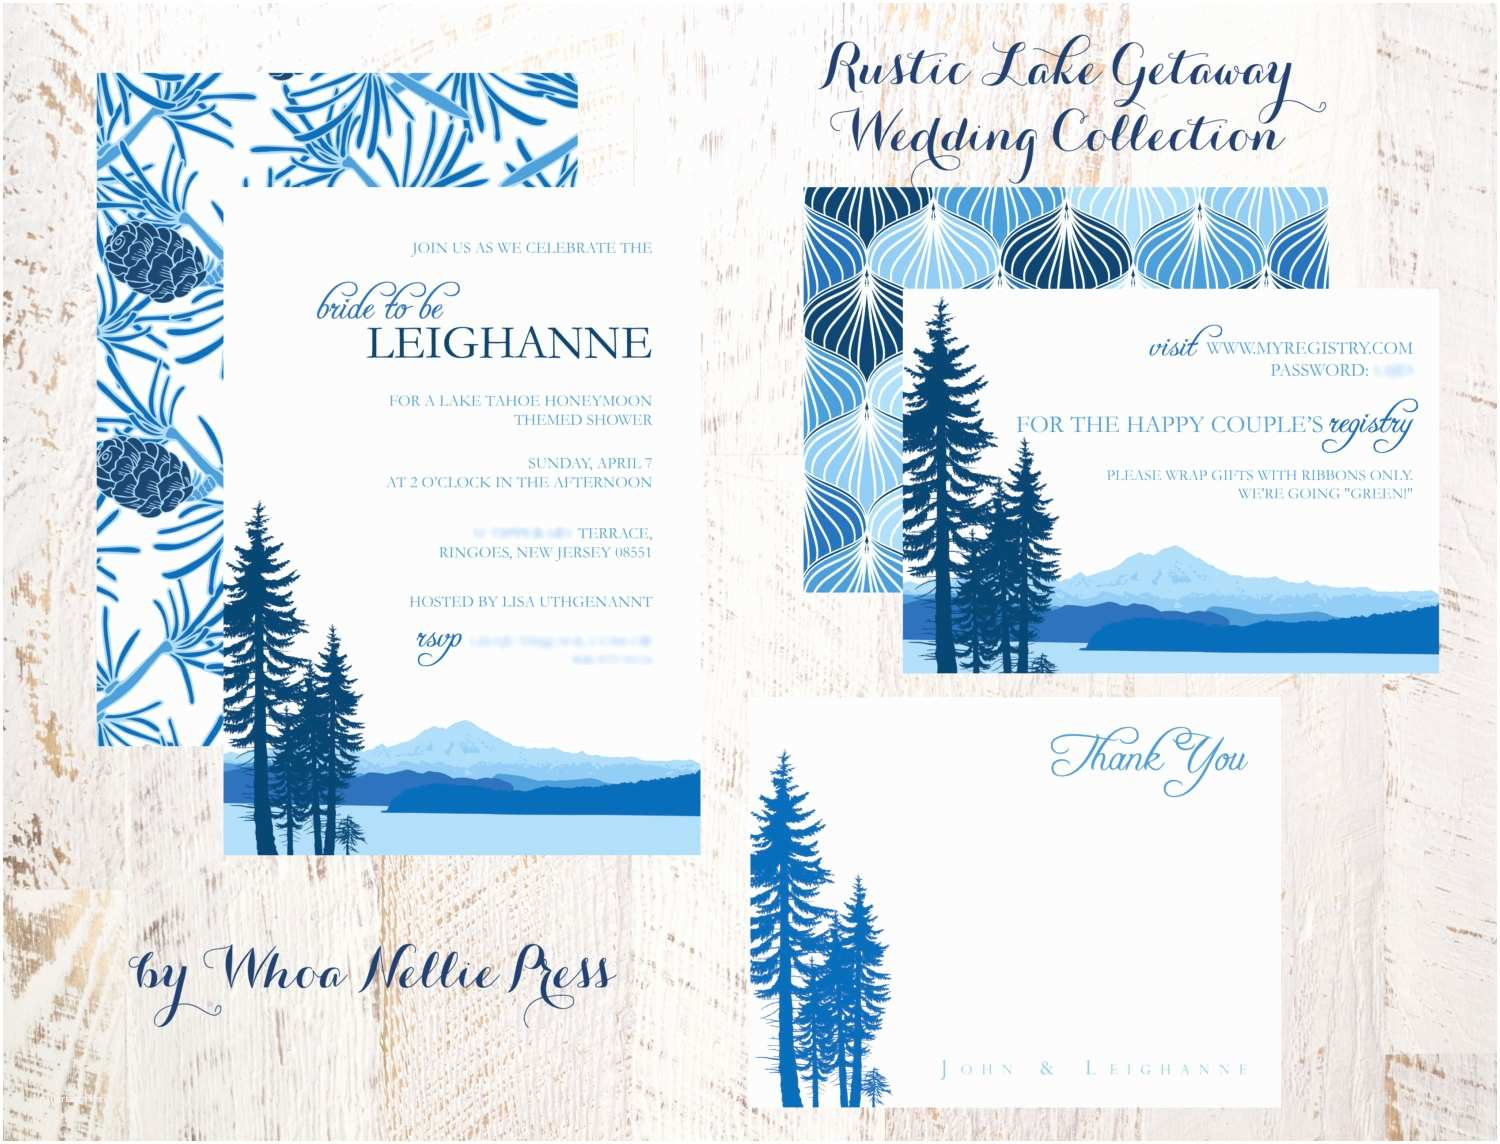 Lake Wedding Invitations Wedding Invitations Rustic Lake Getaway Collection